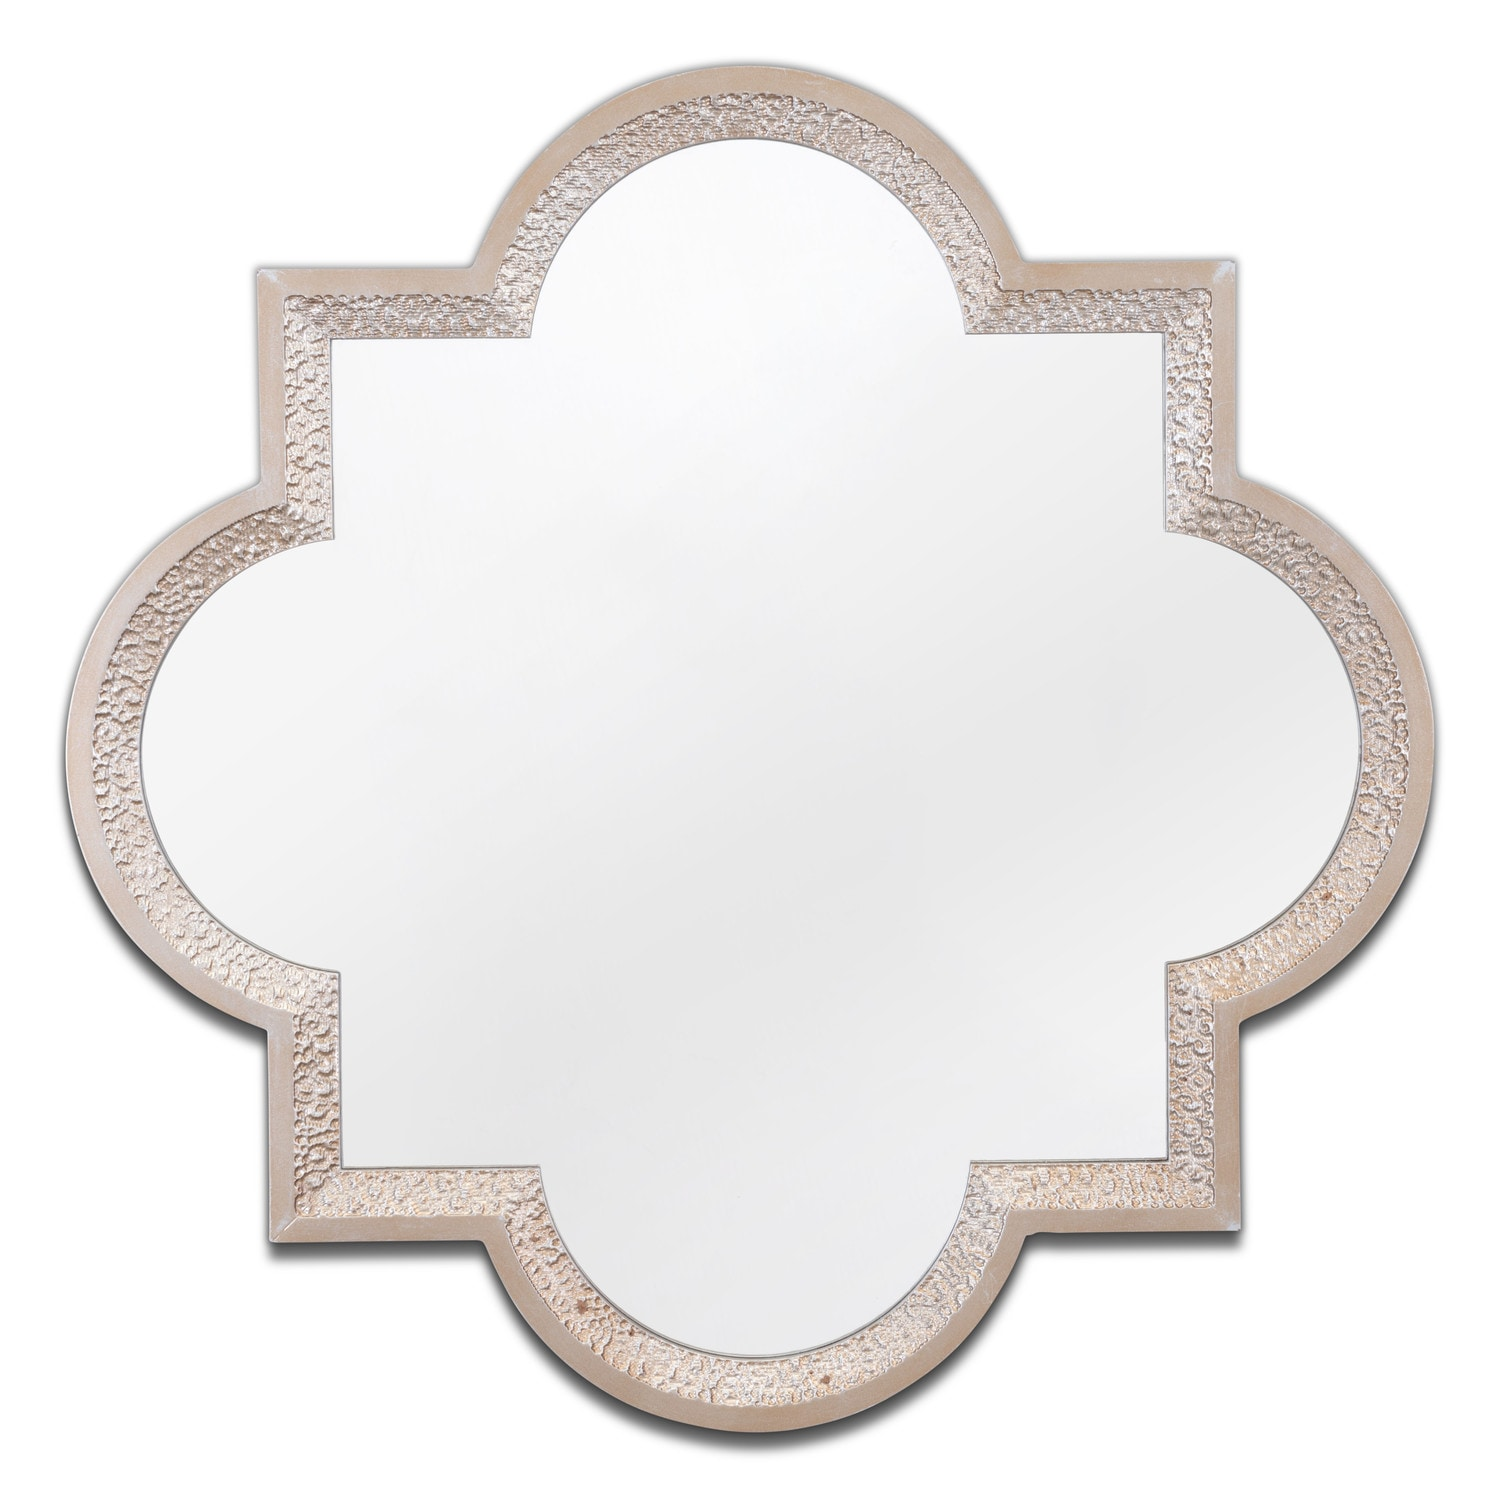 Home Accessories - Chami Mirror - Silver